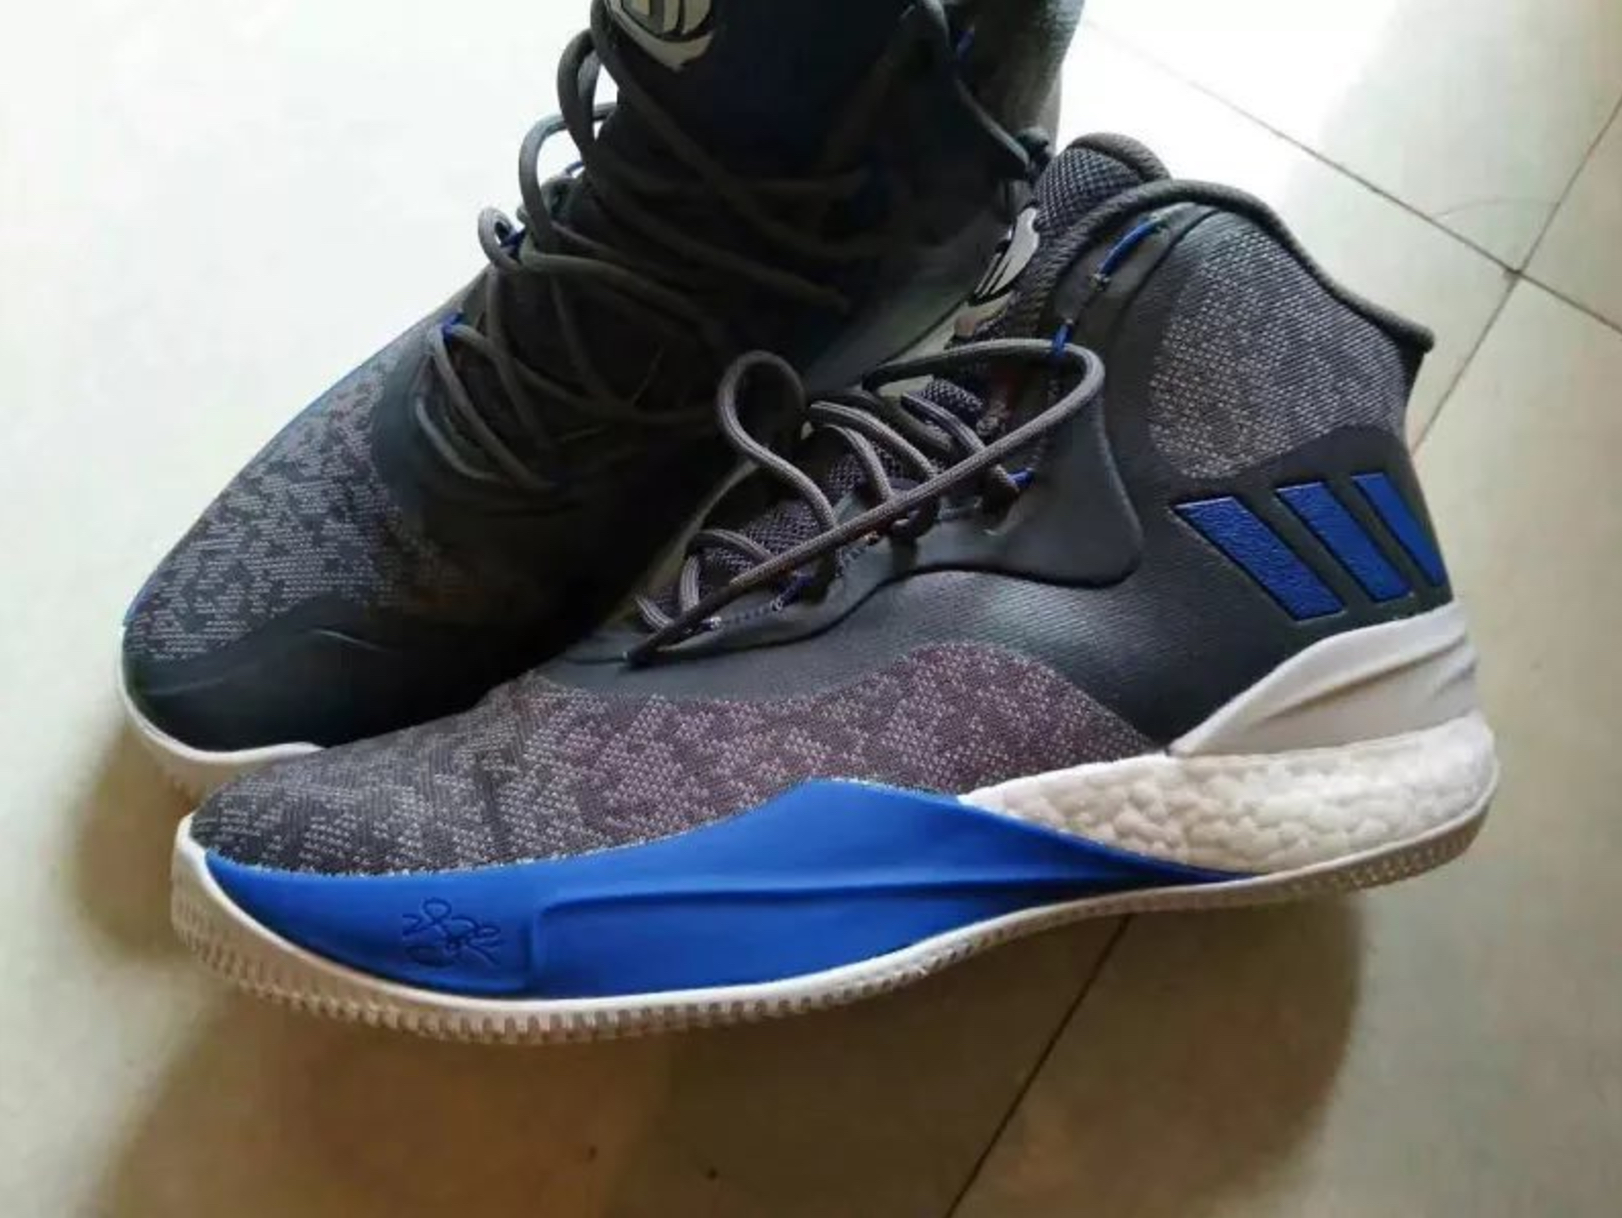 822c82caf662 What Could Be the adidas D Rose 8 Surfaces Online - WearTesters